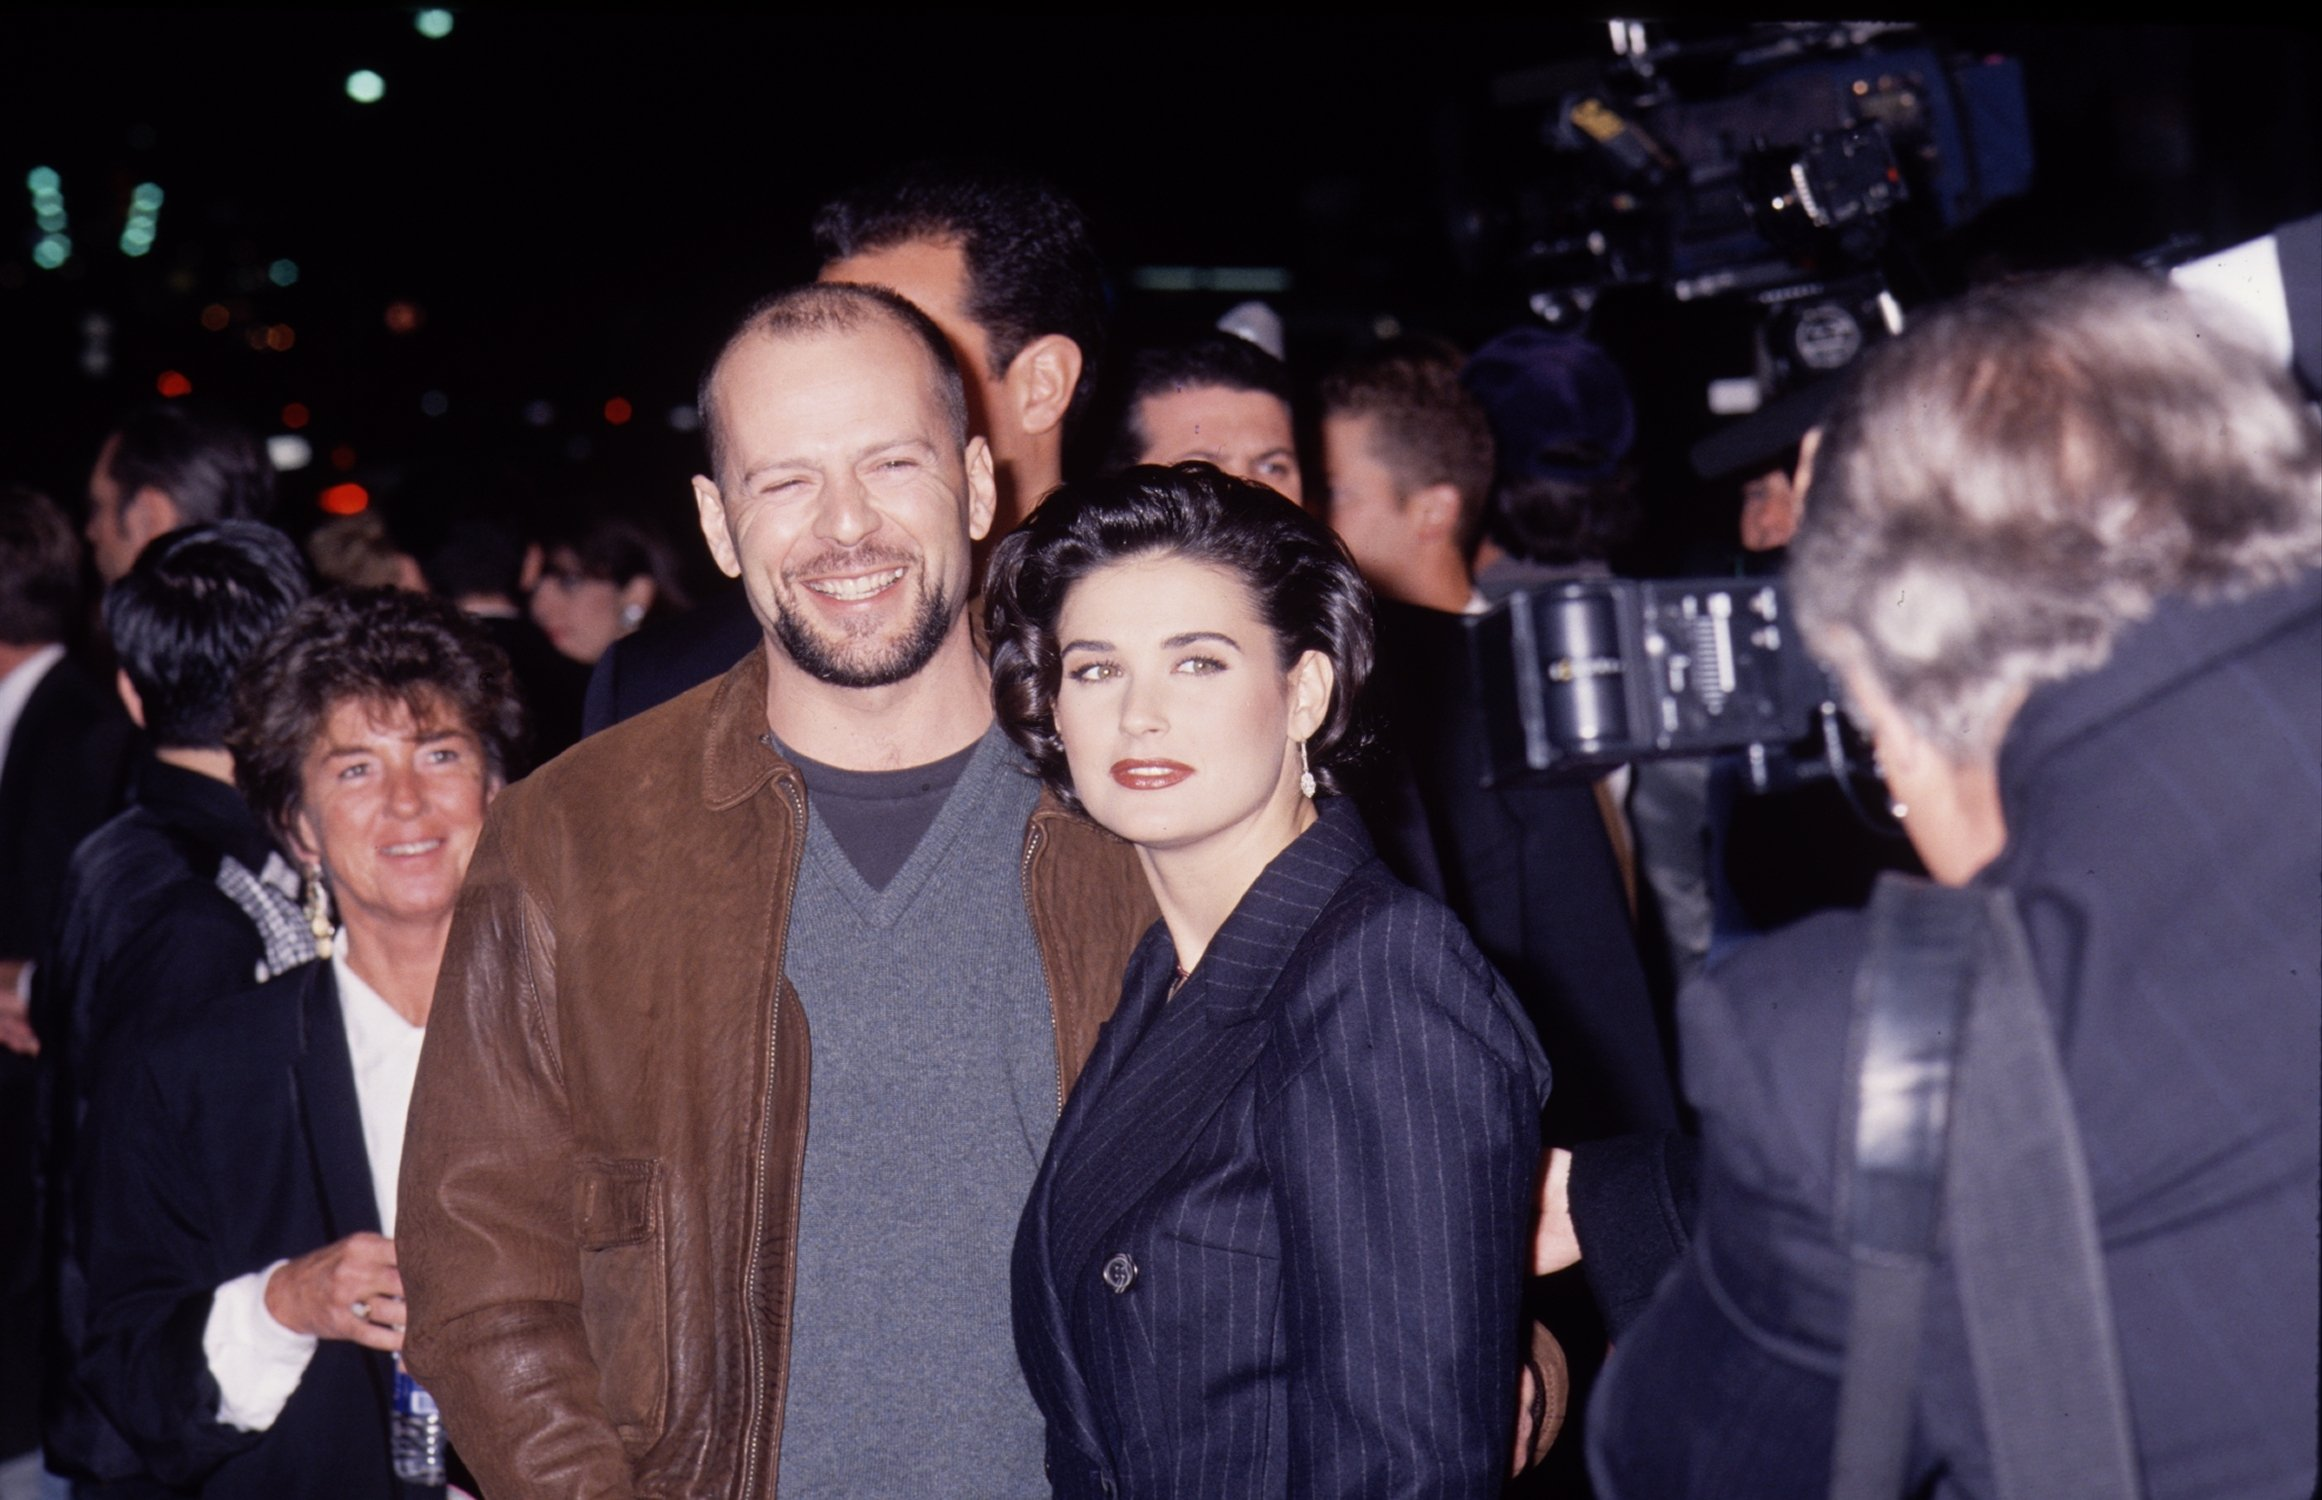 Image Sources: Getty Images/Bruce Willis and Demi Moore together for an event